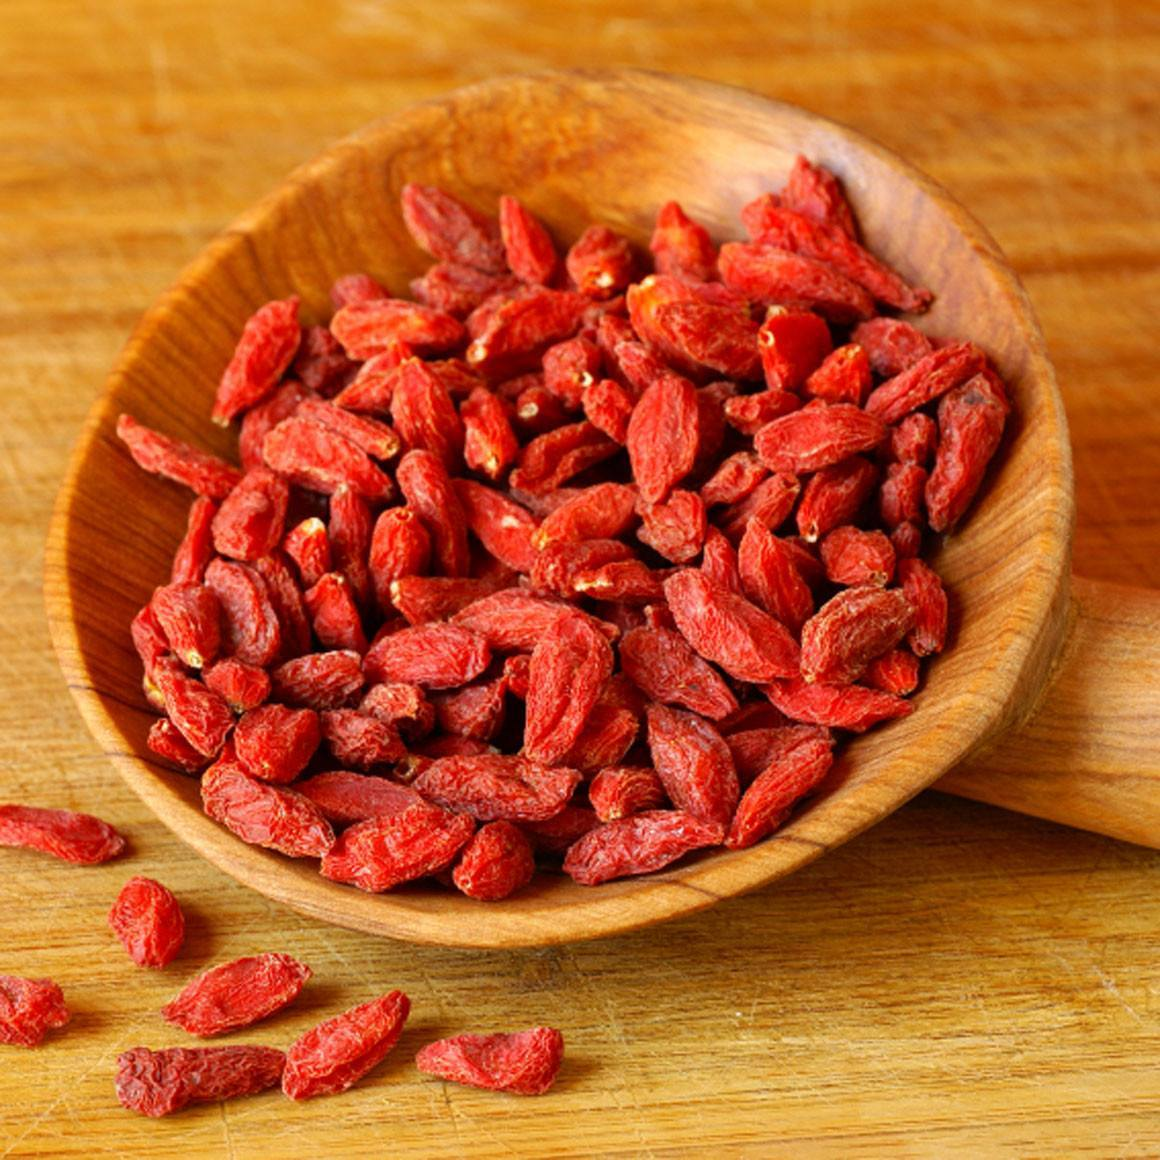 nutrient dense goji berries